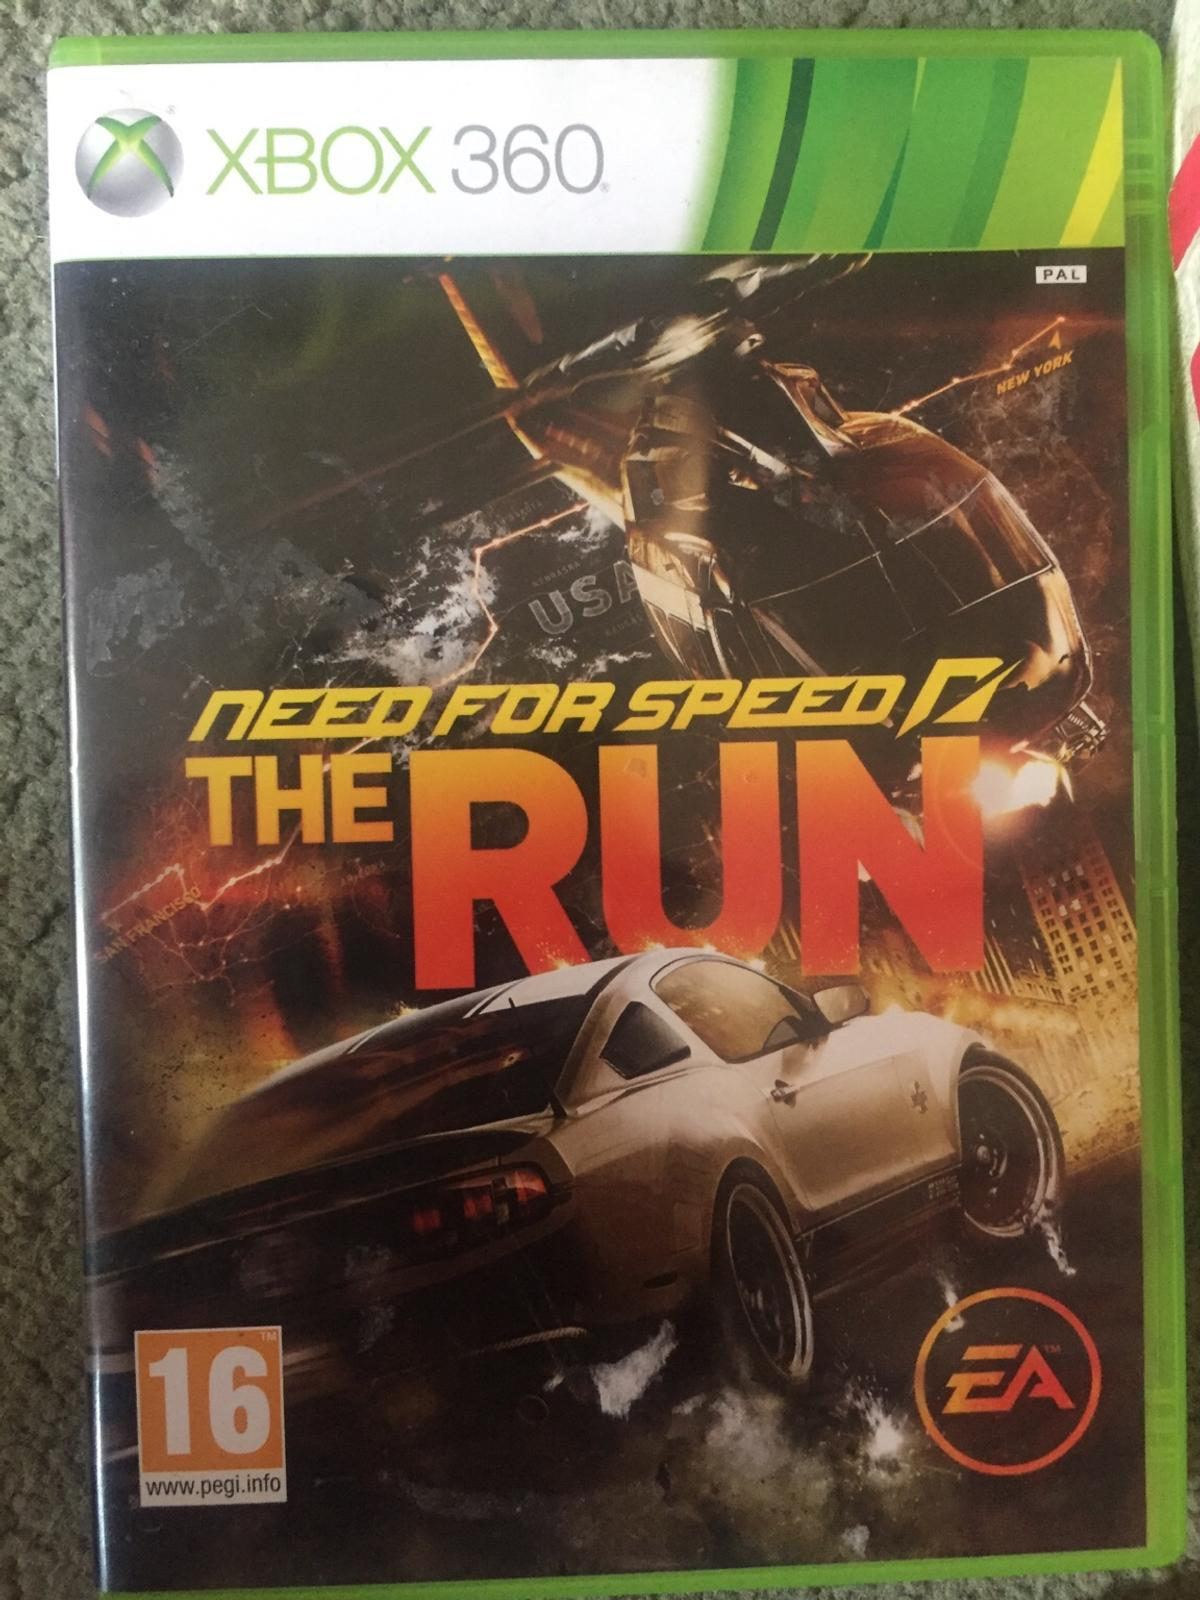 New Need for speed The run Xbox 360 game